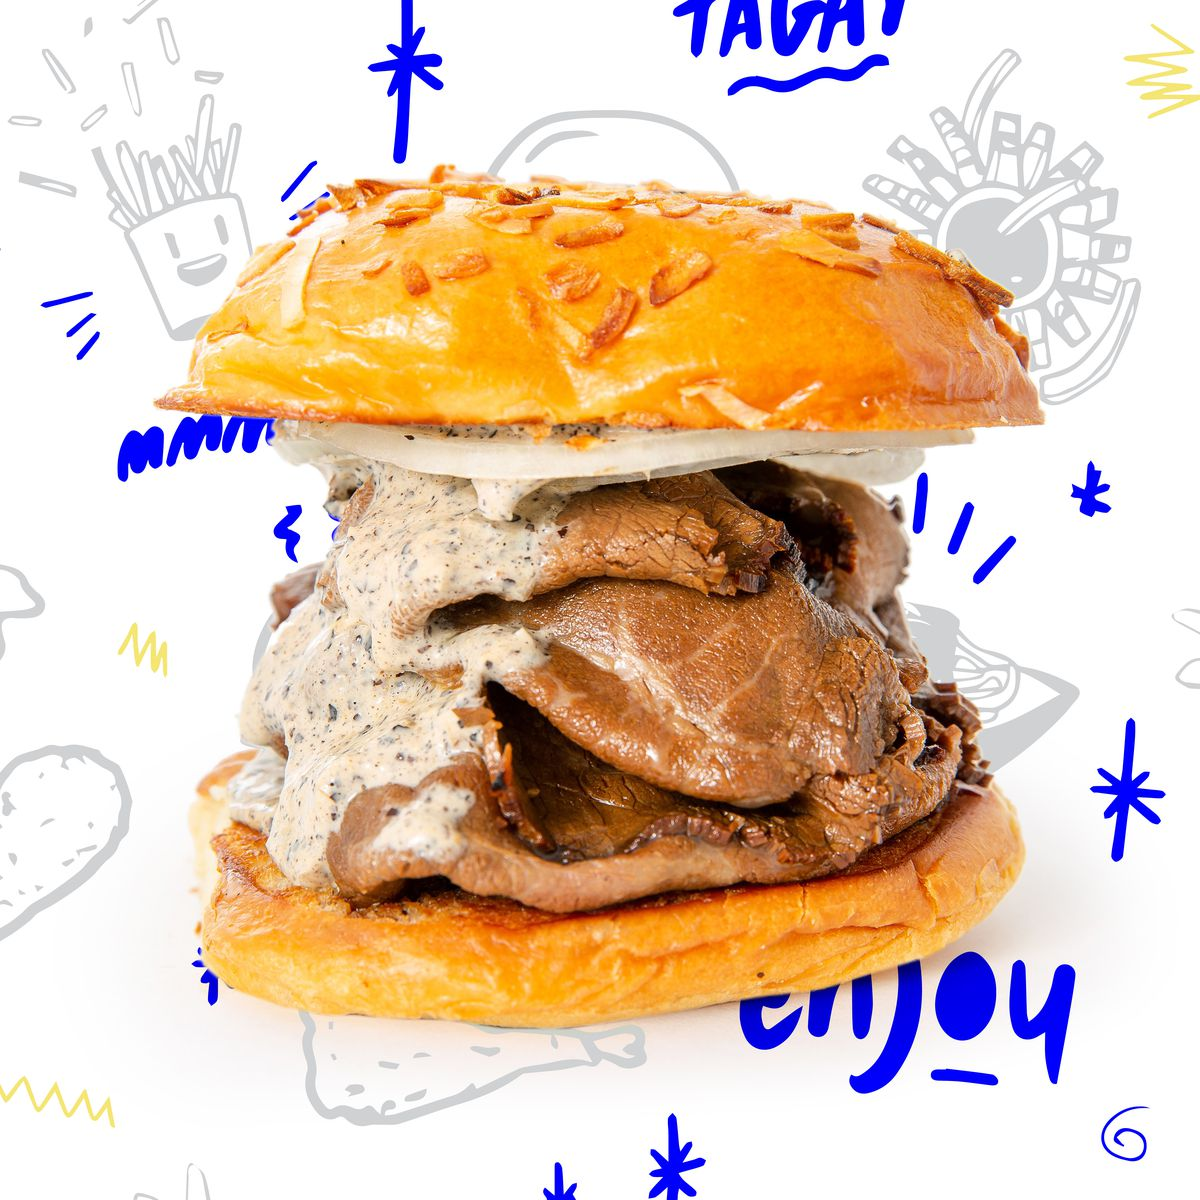 The Eugene sandwich is Pogiboy's version of Baltimore pit beef